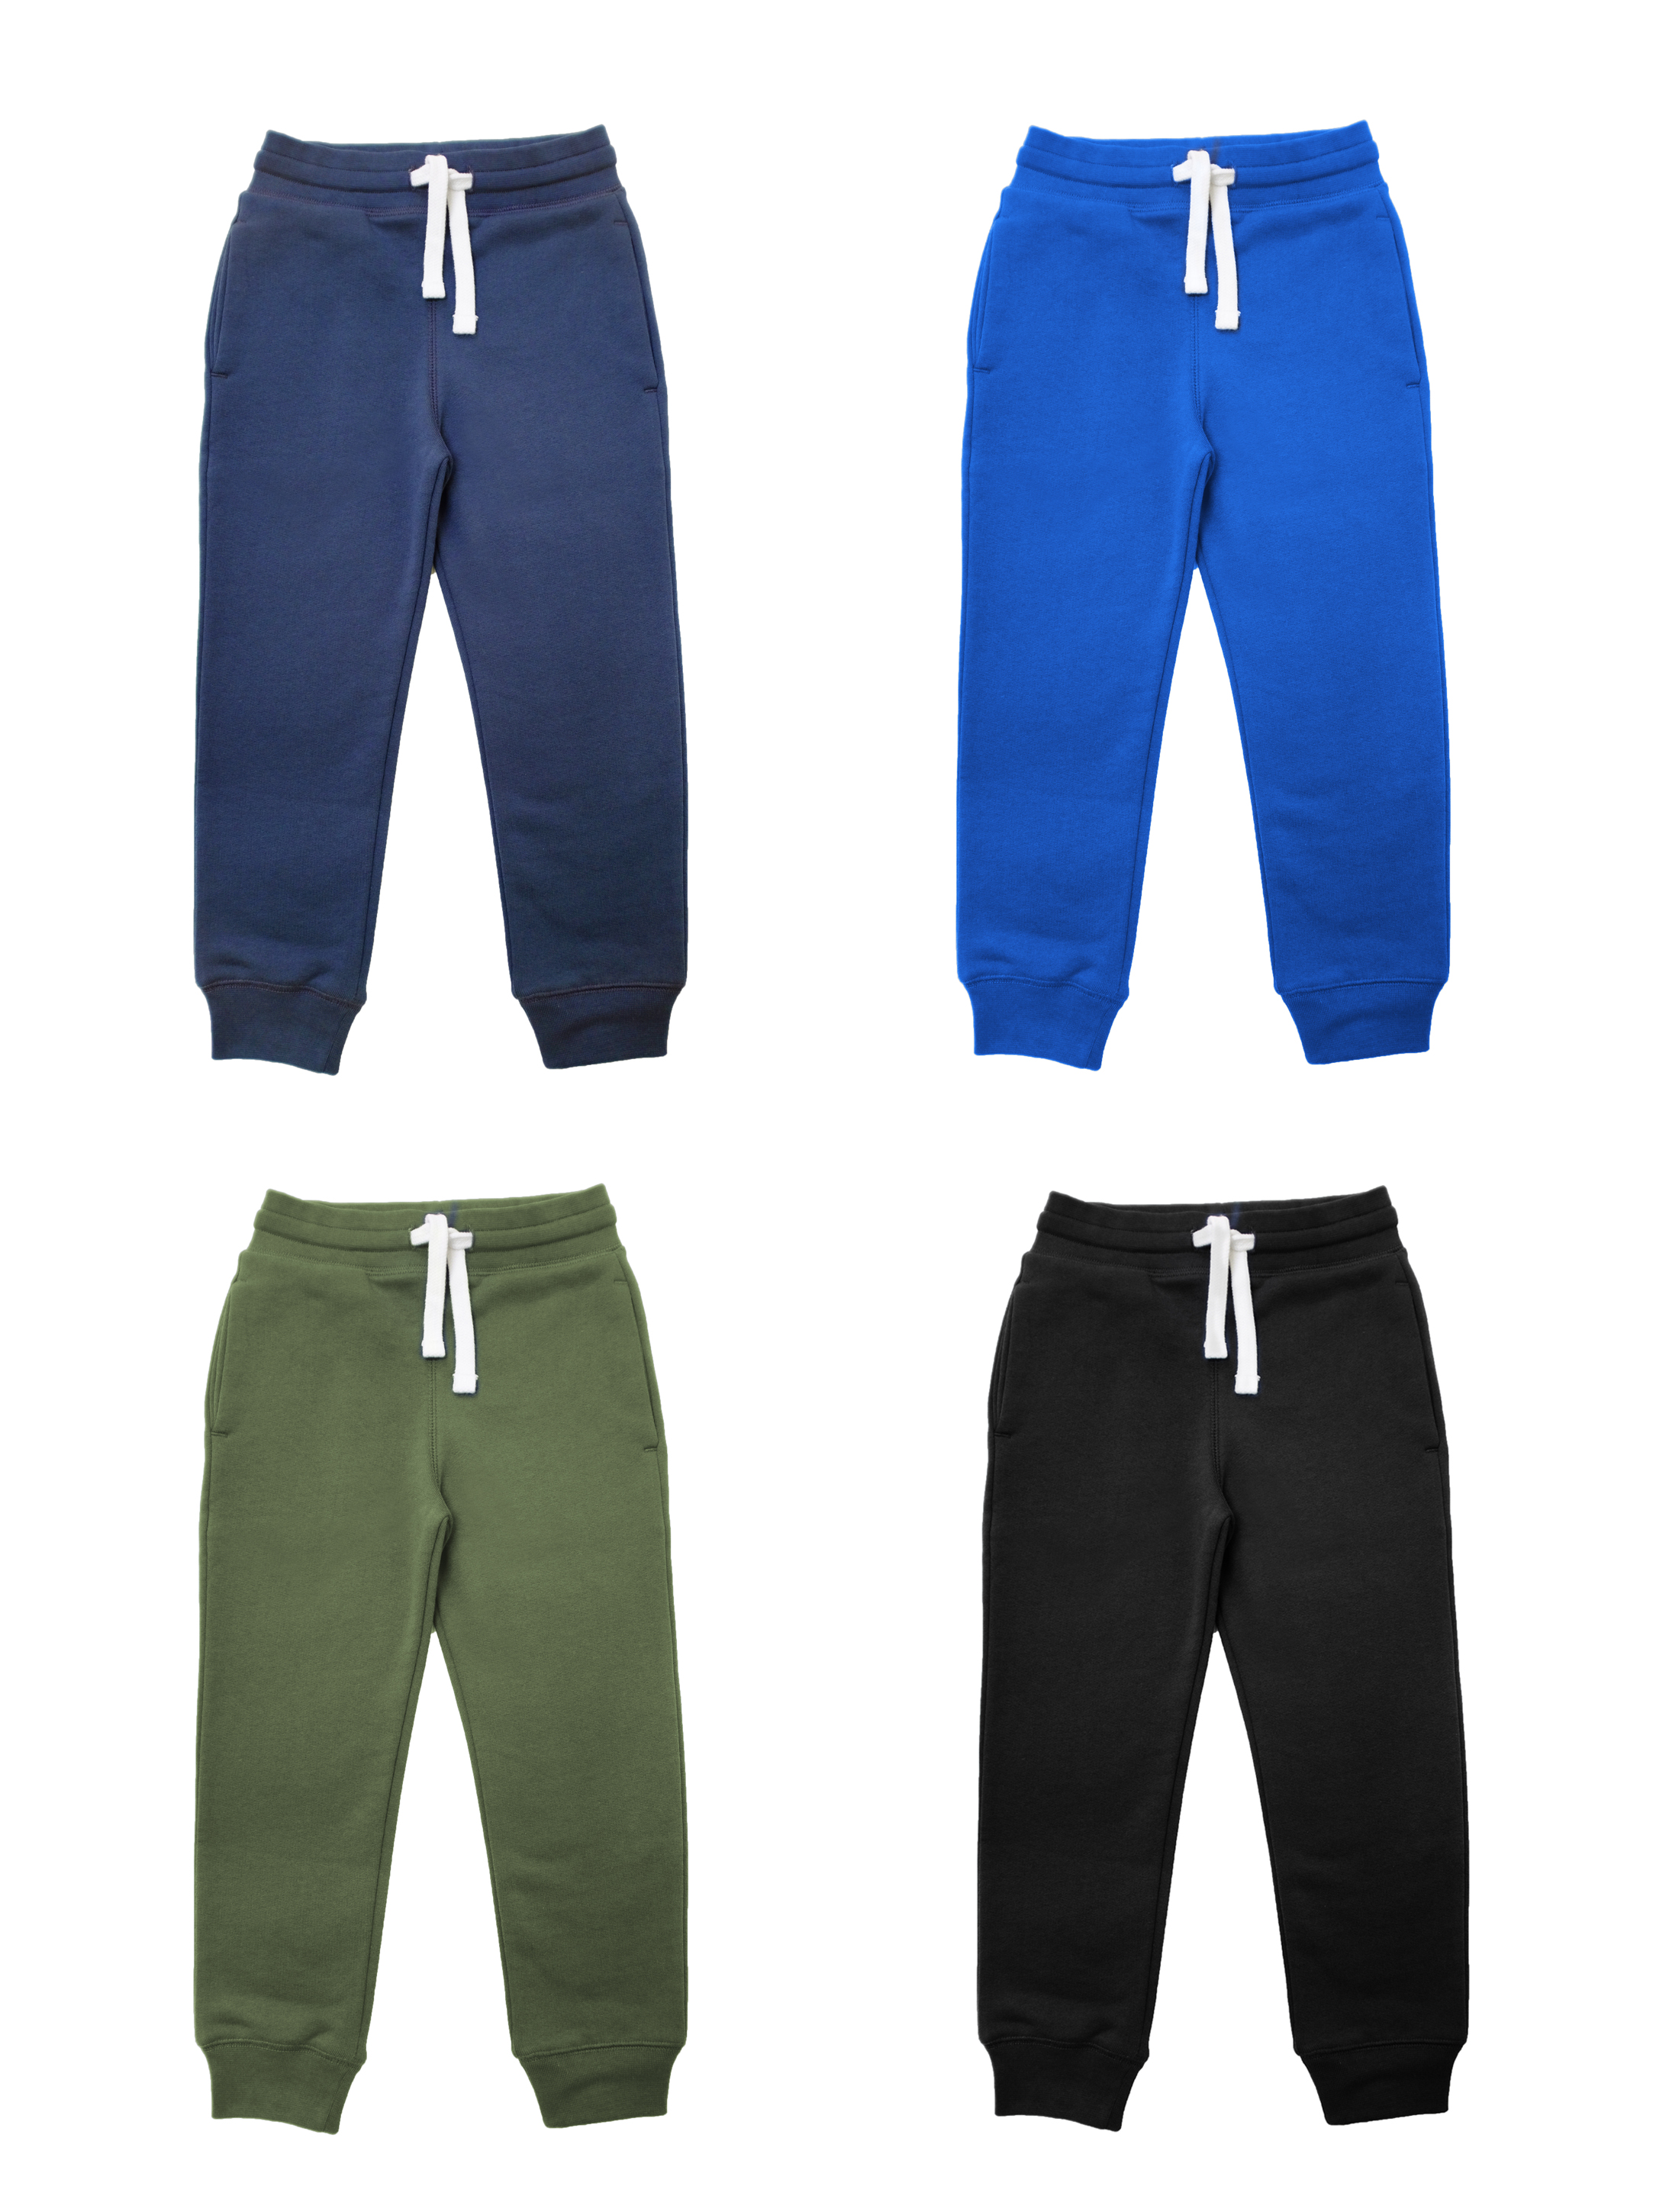 8e721e747 Pure Cotton Tracksuit Bottoms | 100% Organic Cotton Joggers ...